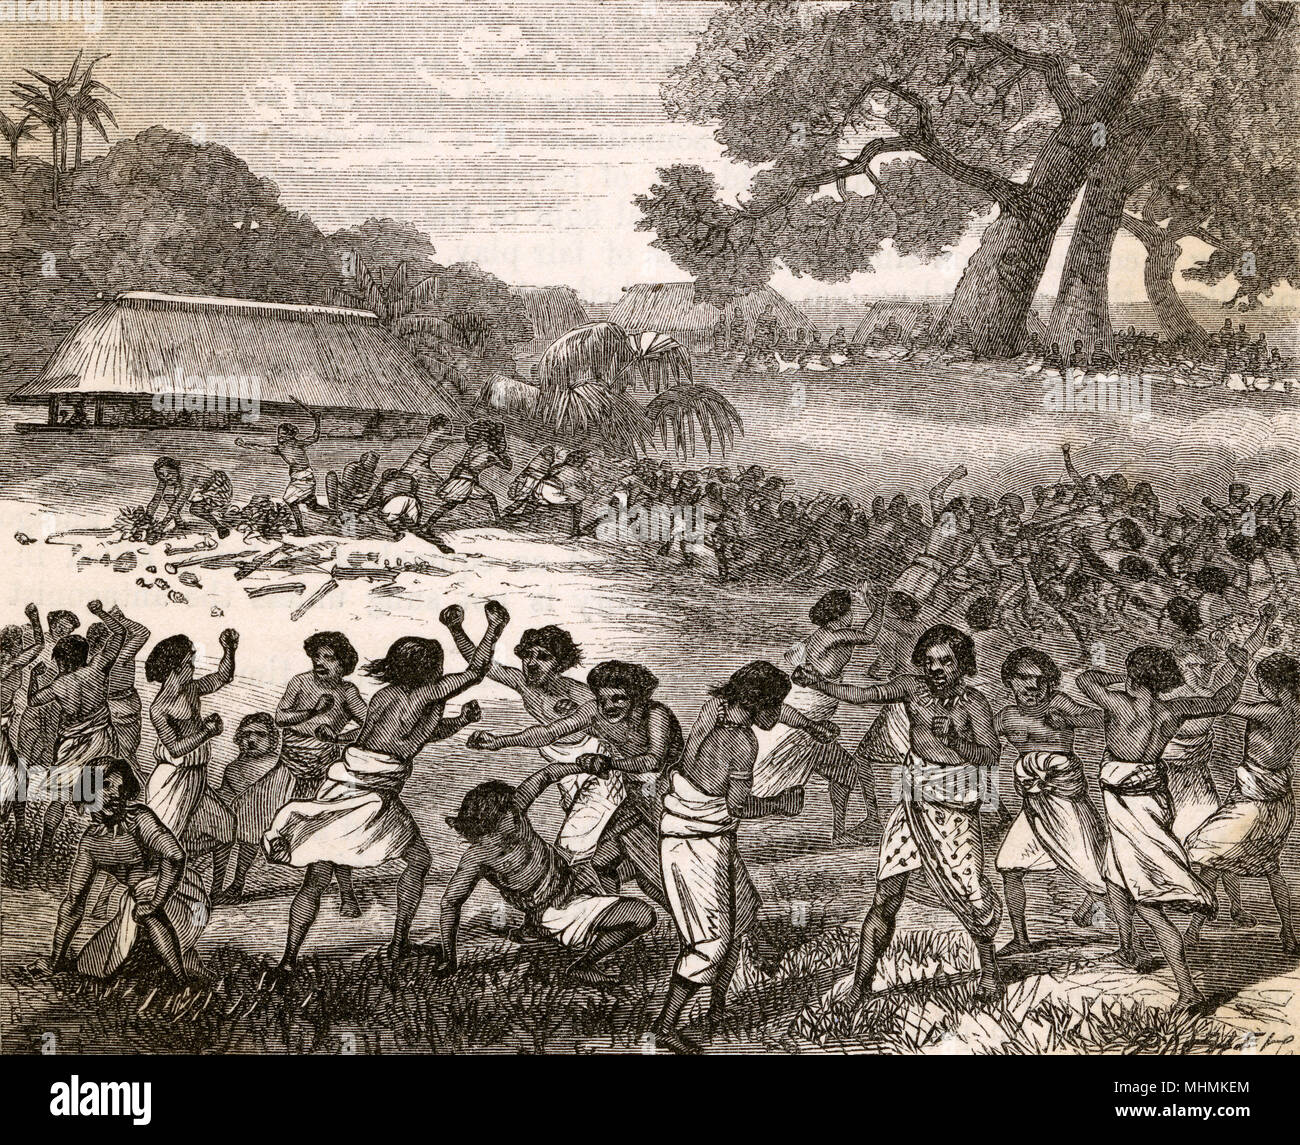 Pugilism in the Pacific as a crowd of Tongans fight during the Tow Tow festival.       Date: 1870 - Stock Image